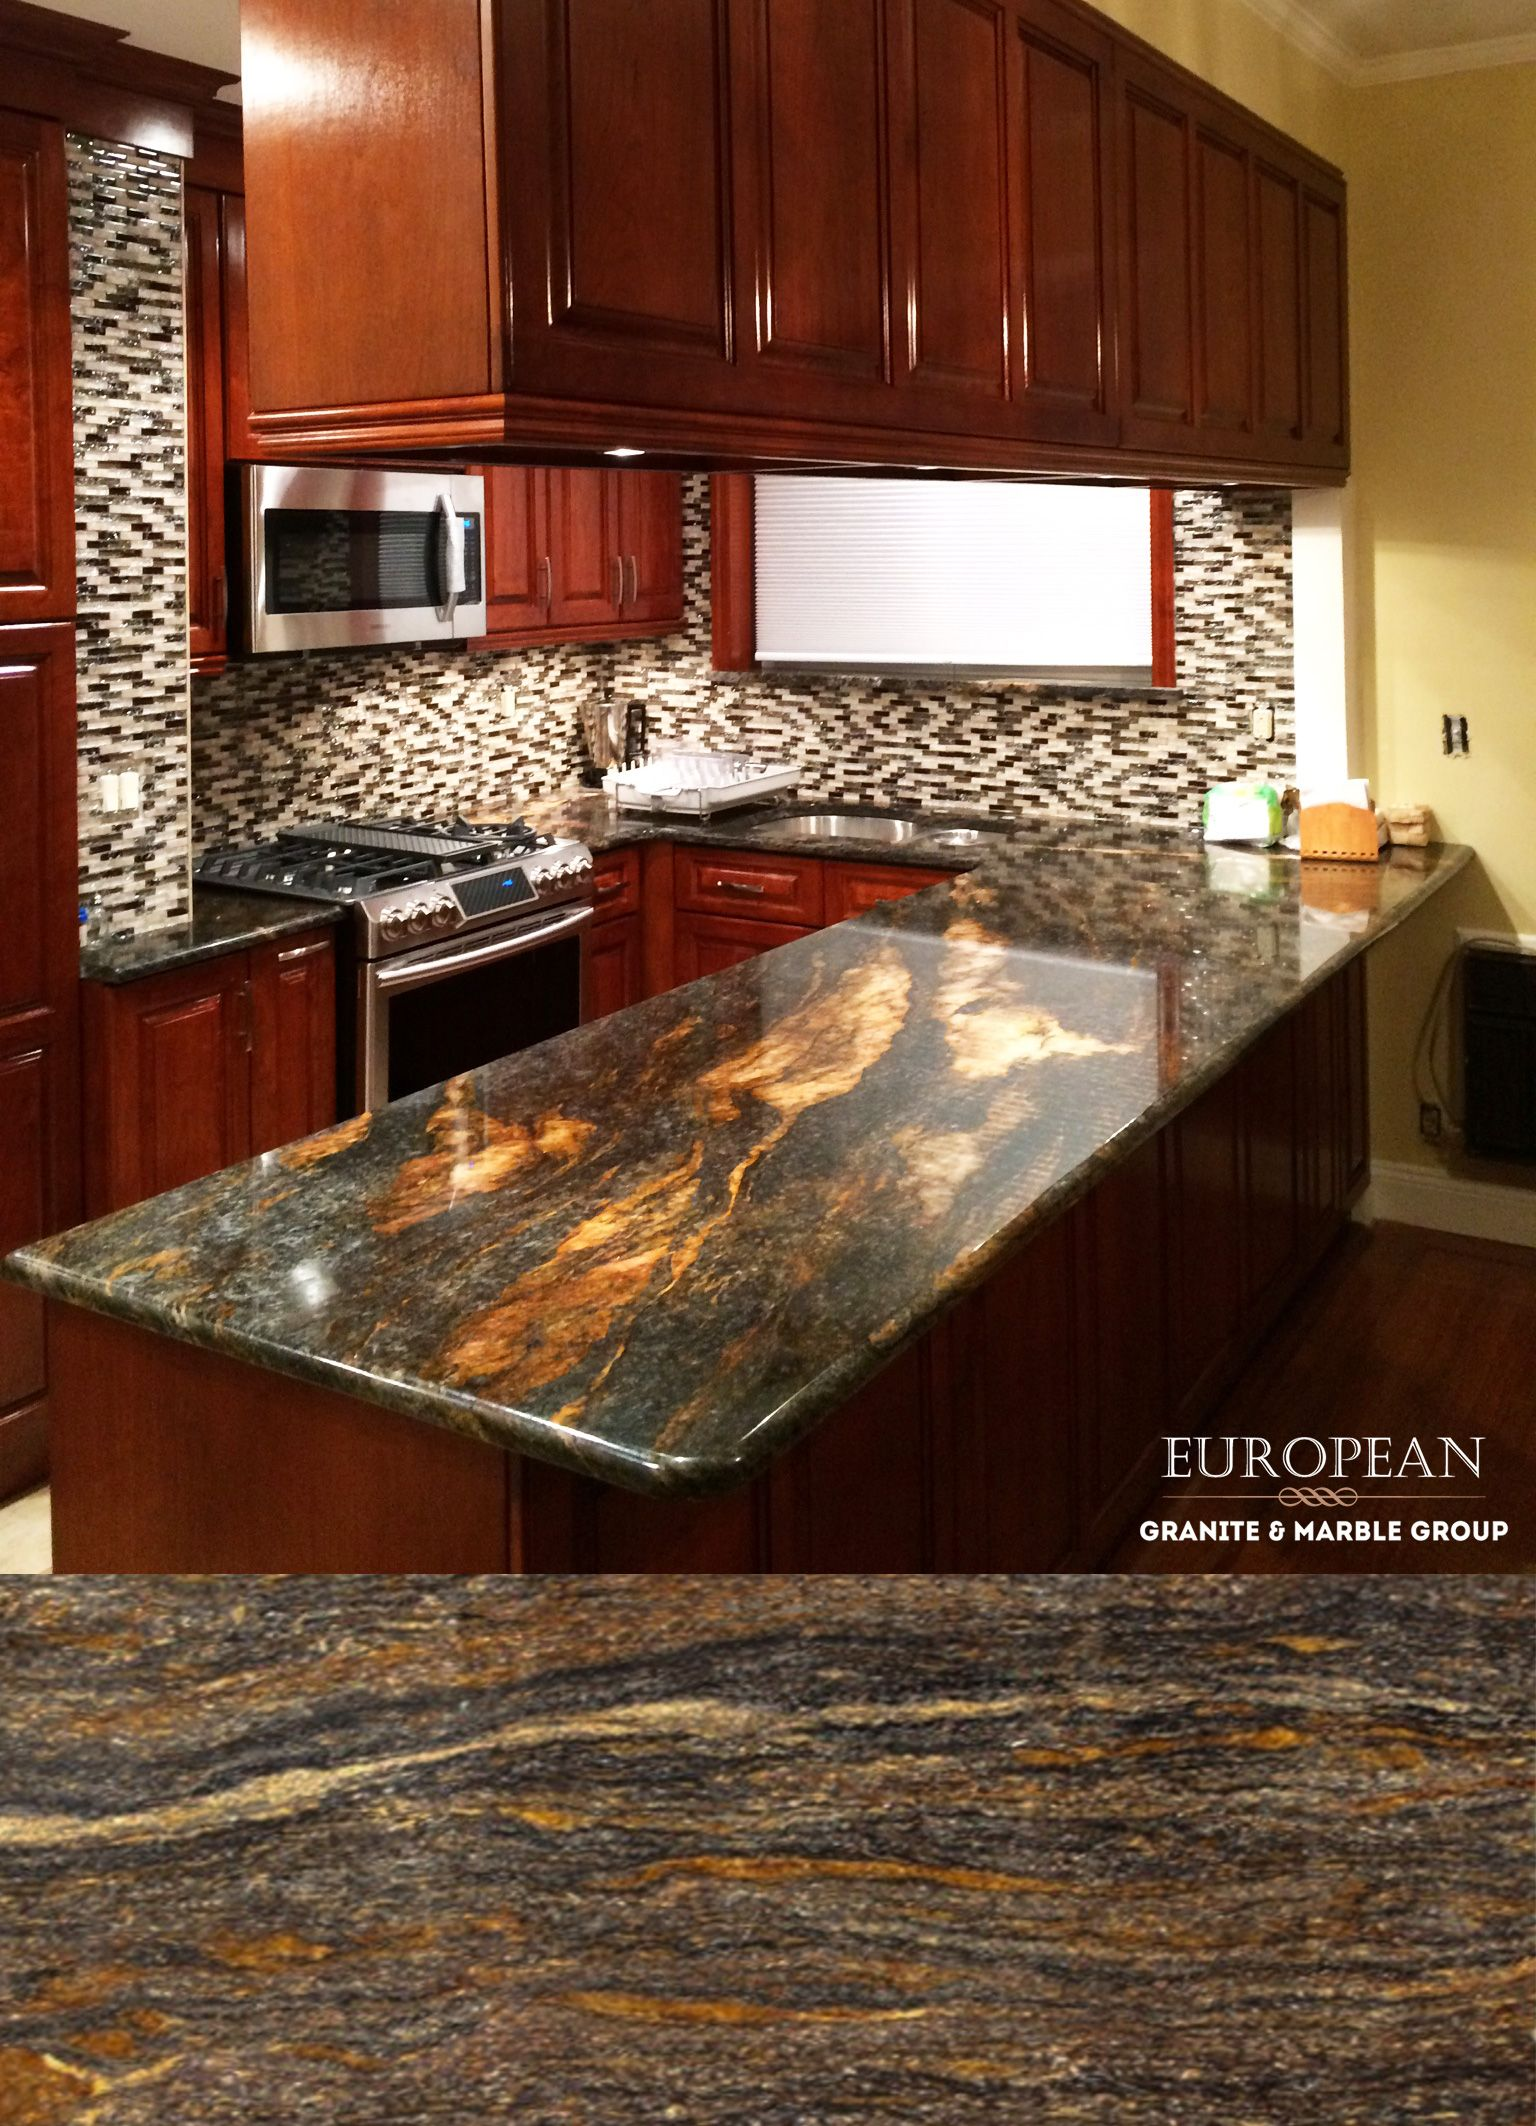 This Kitchen Design Features Orion Granite Countertops